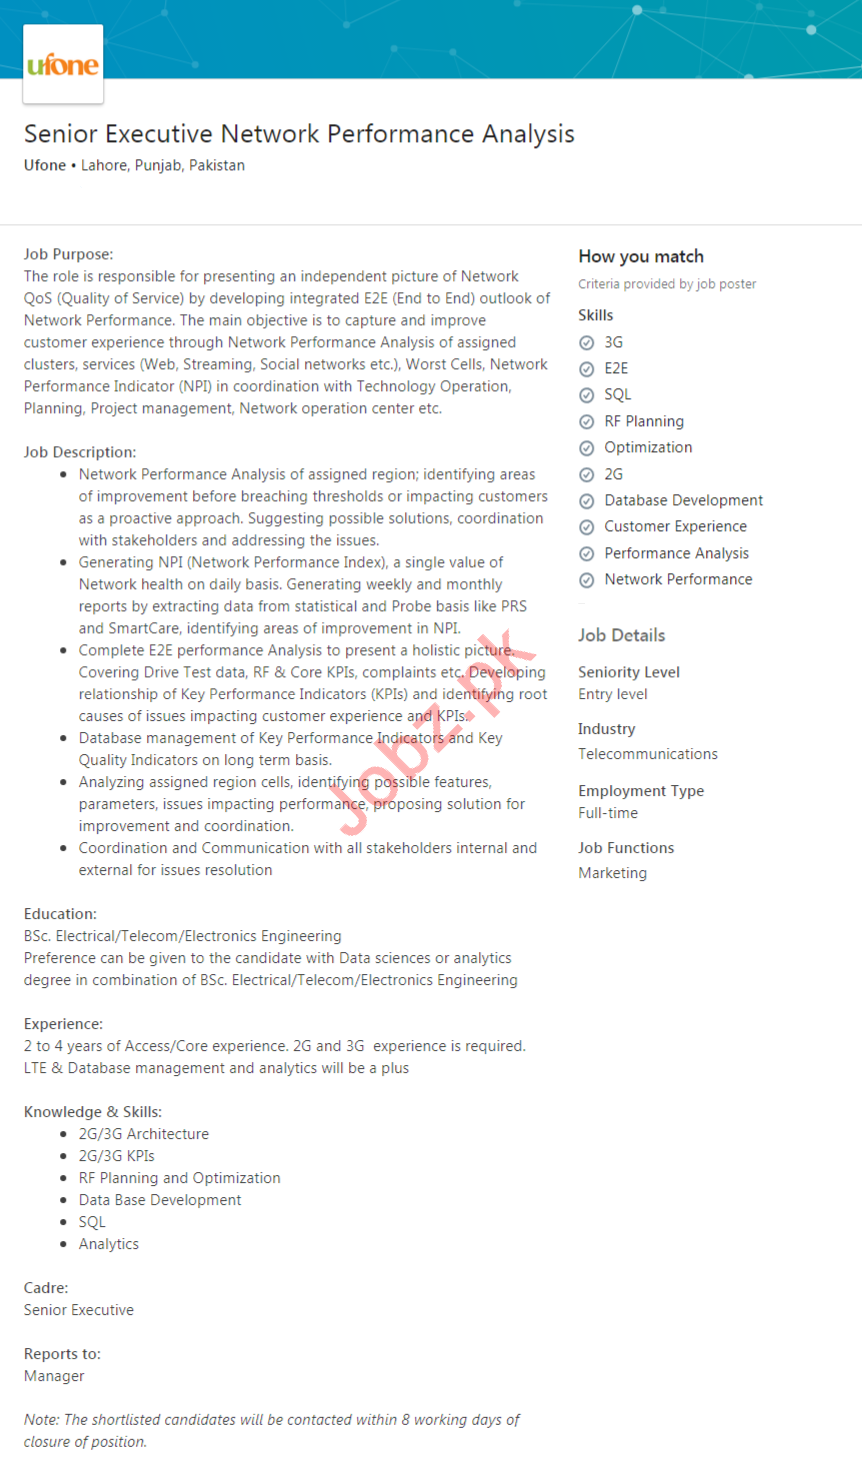 Executive Network Performance Analysis Jobs in Ufone